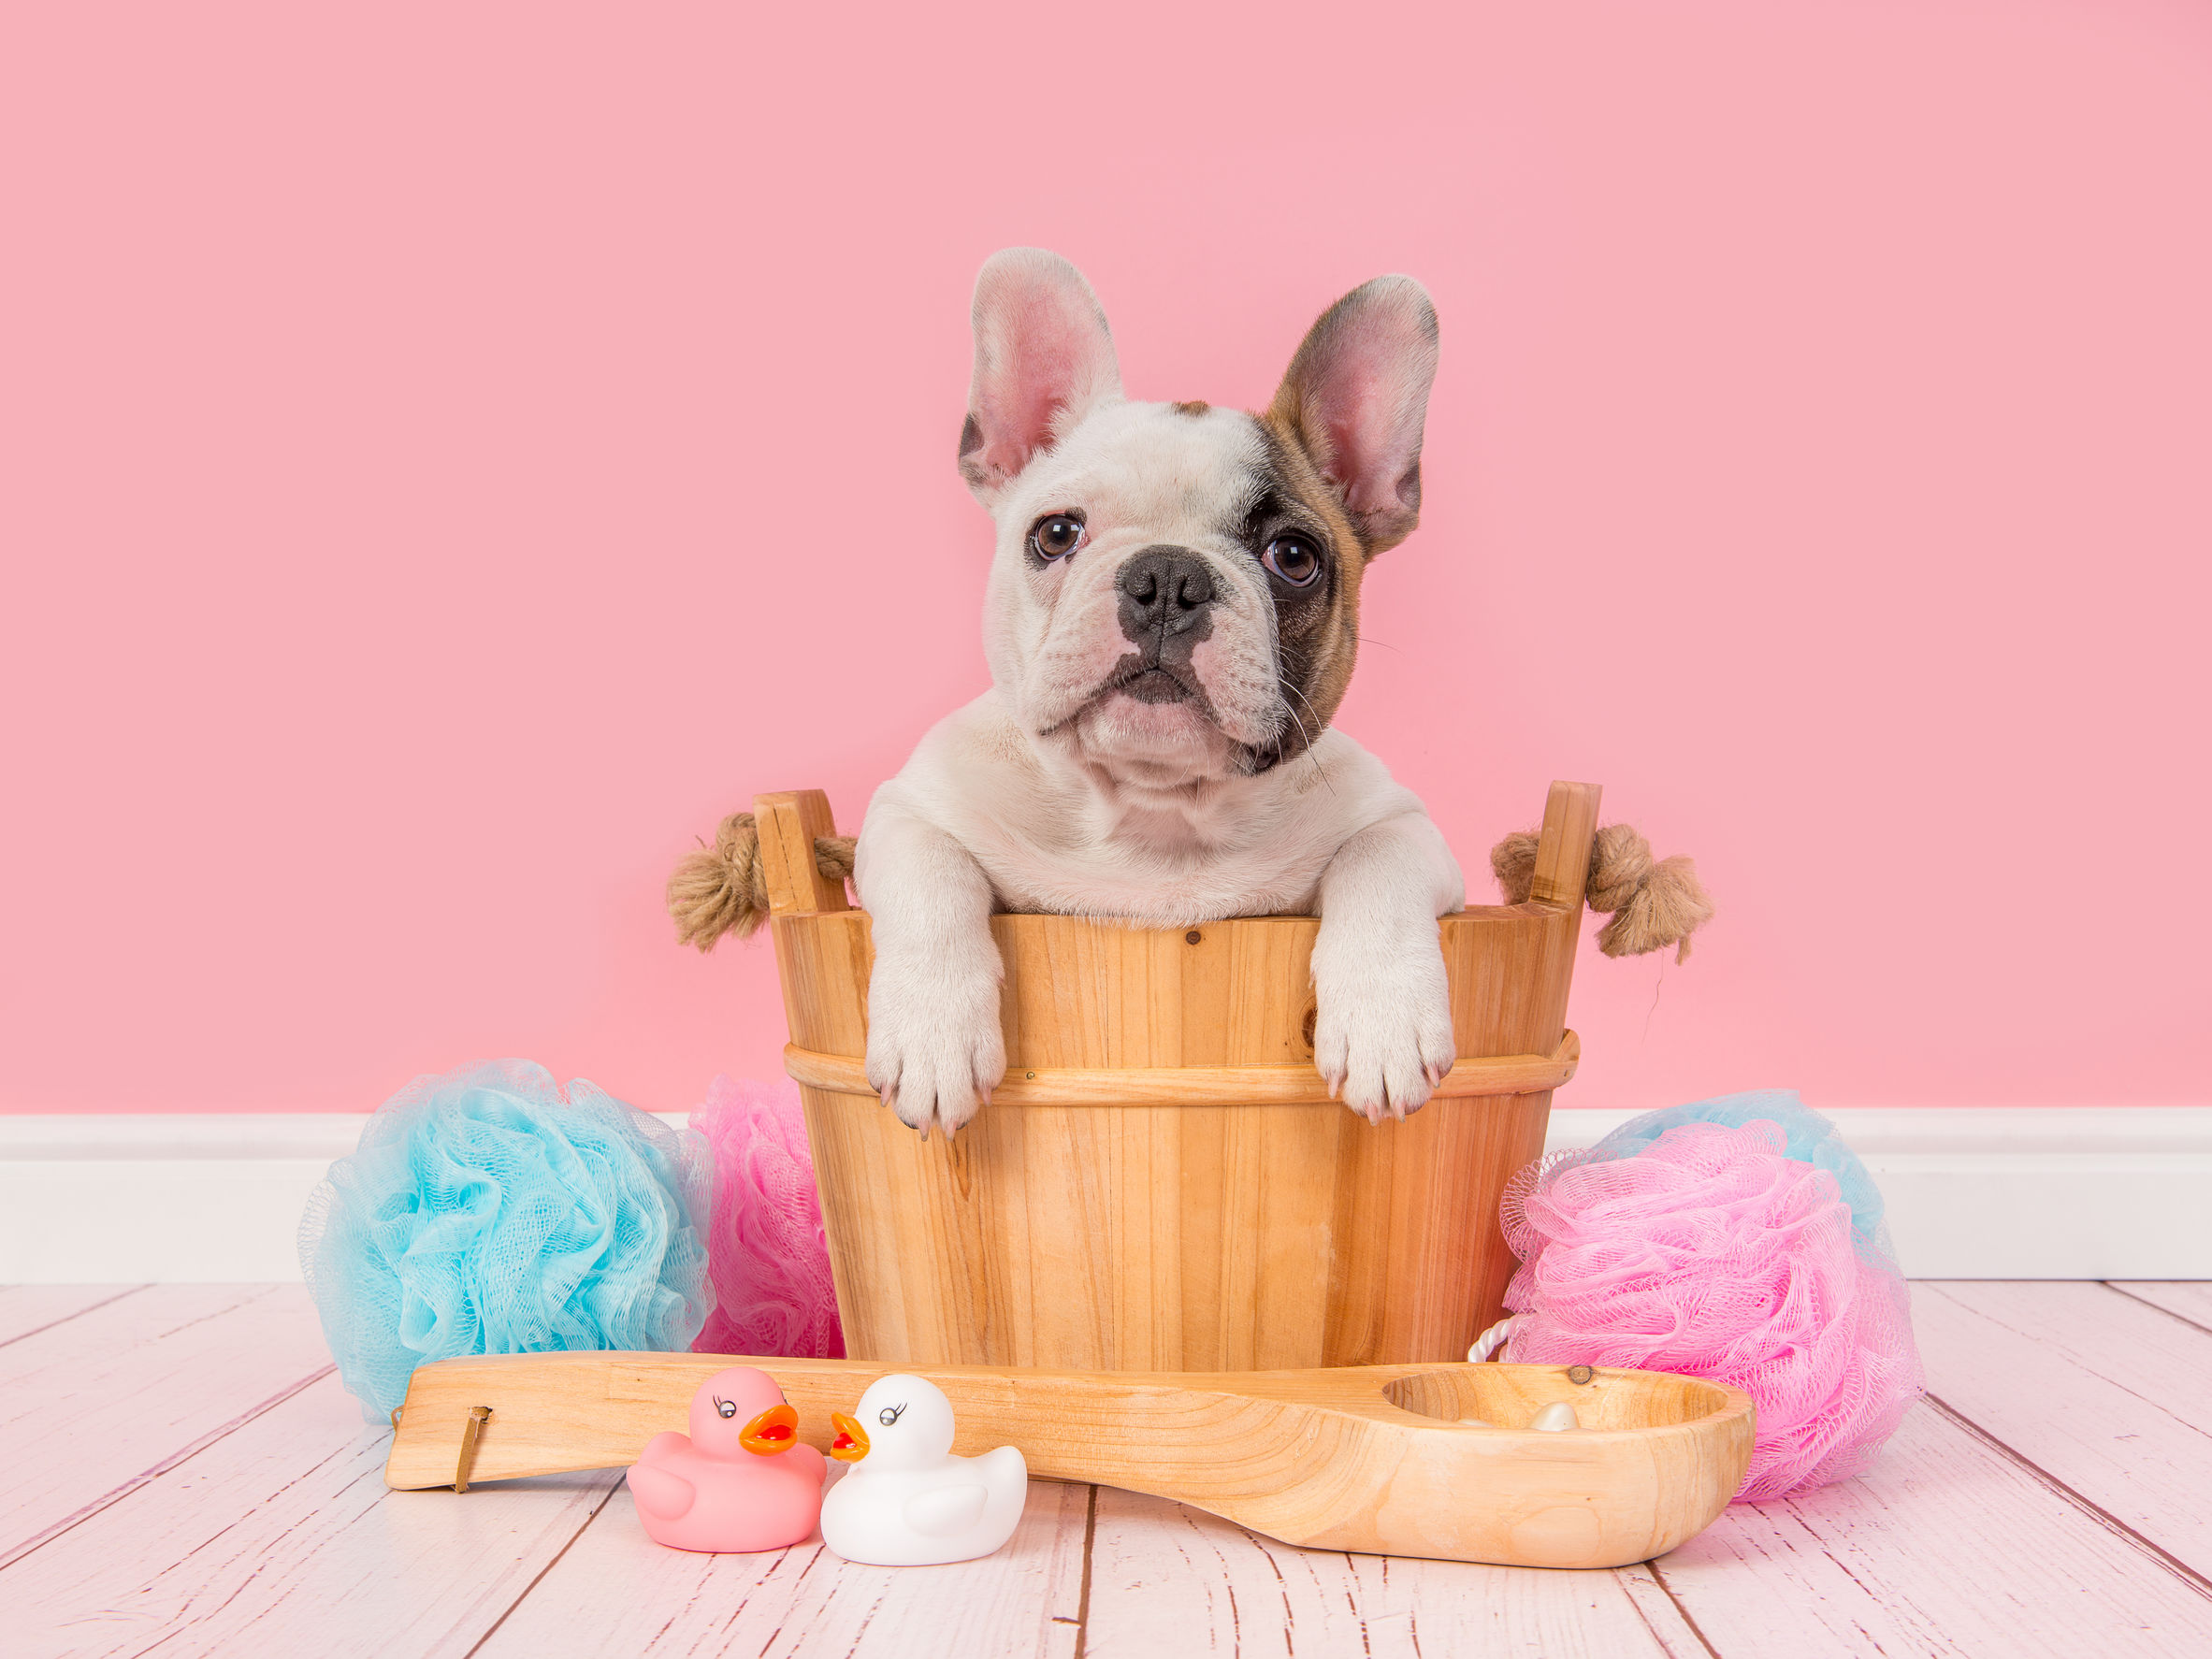 What are some benefits of grooming your pets?